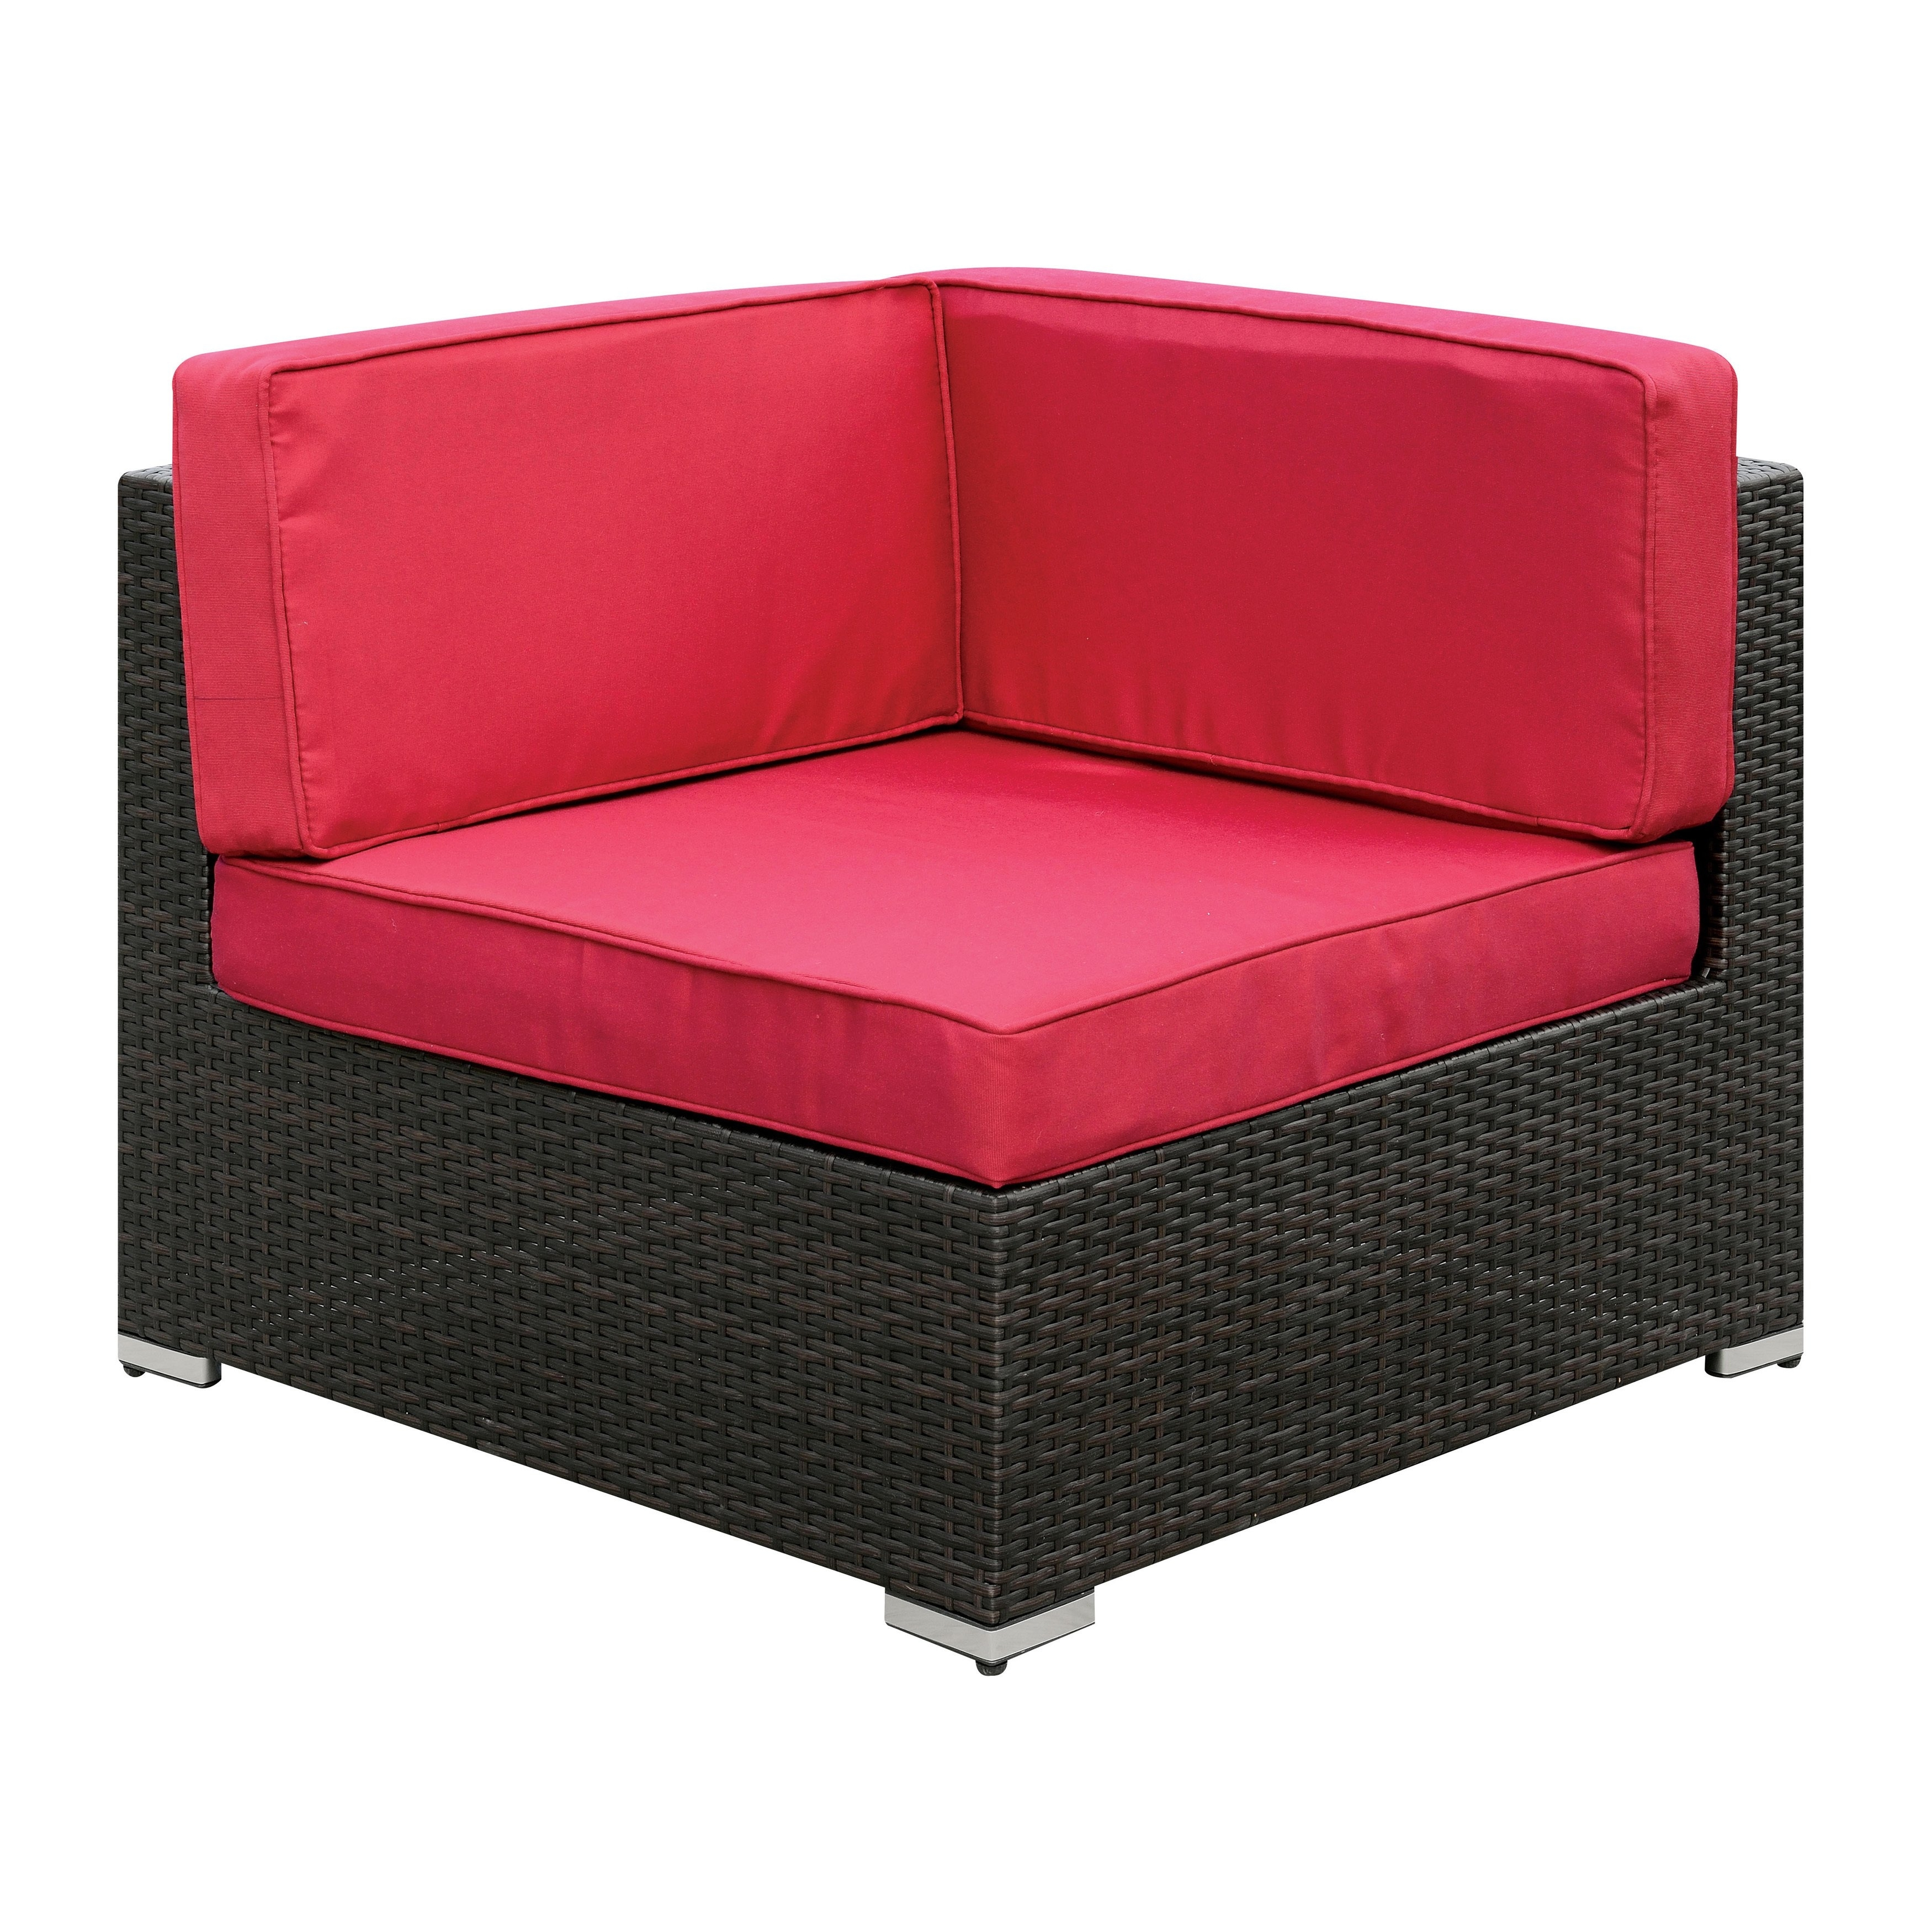 Shop Furniture Of America Marisa Contemporary 2 Piece Wicker Pertaining To Marissa Ii 3 Piece Sectionals (Image 15 of 25)